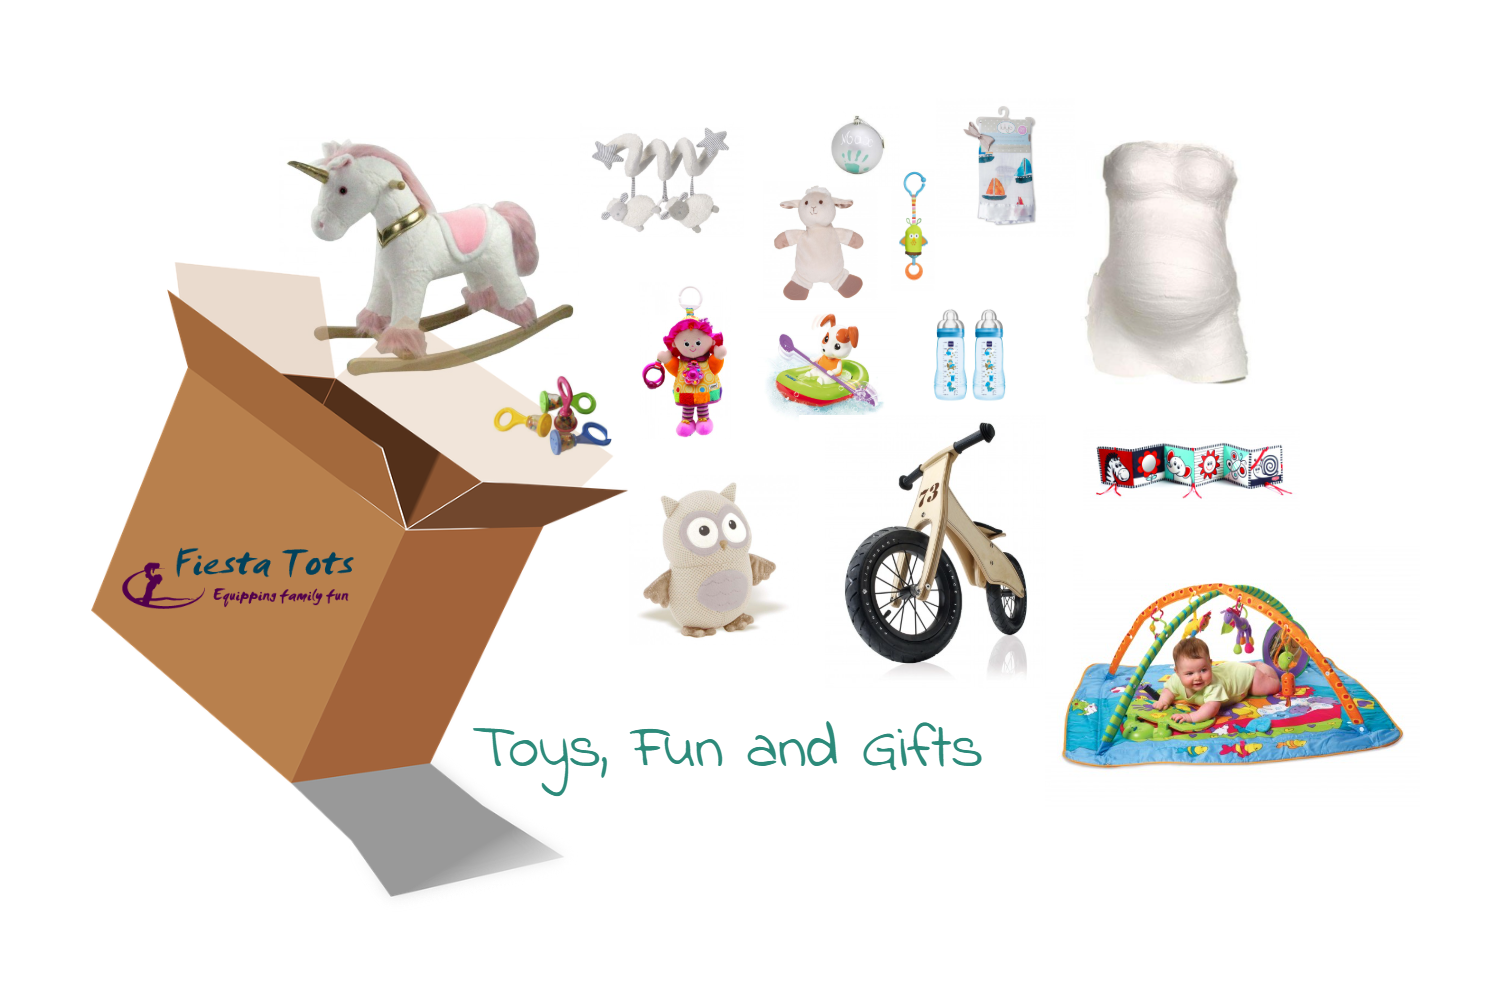 Toys, gifts and fun items